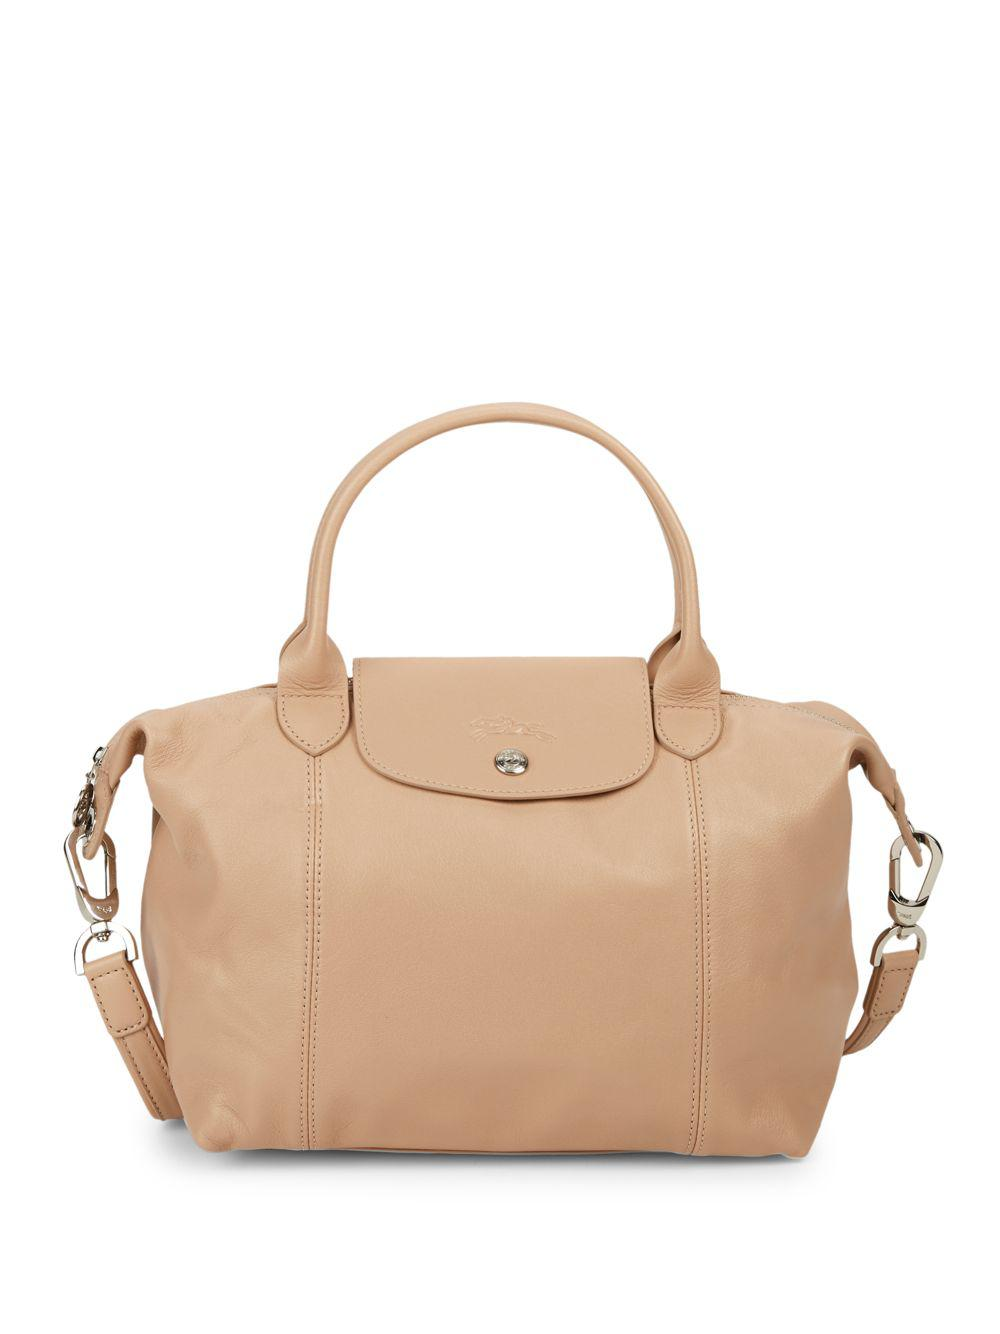 59414a307250 Longchamp Small Le Pliage Cuir Leather Satchel in Natural - Lyst